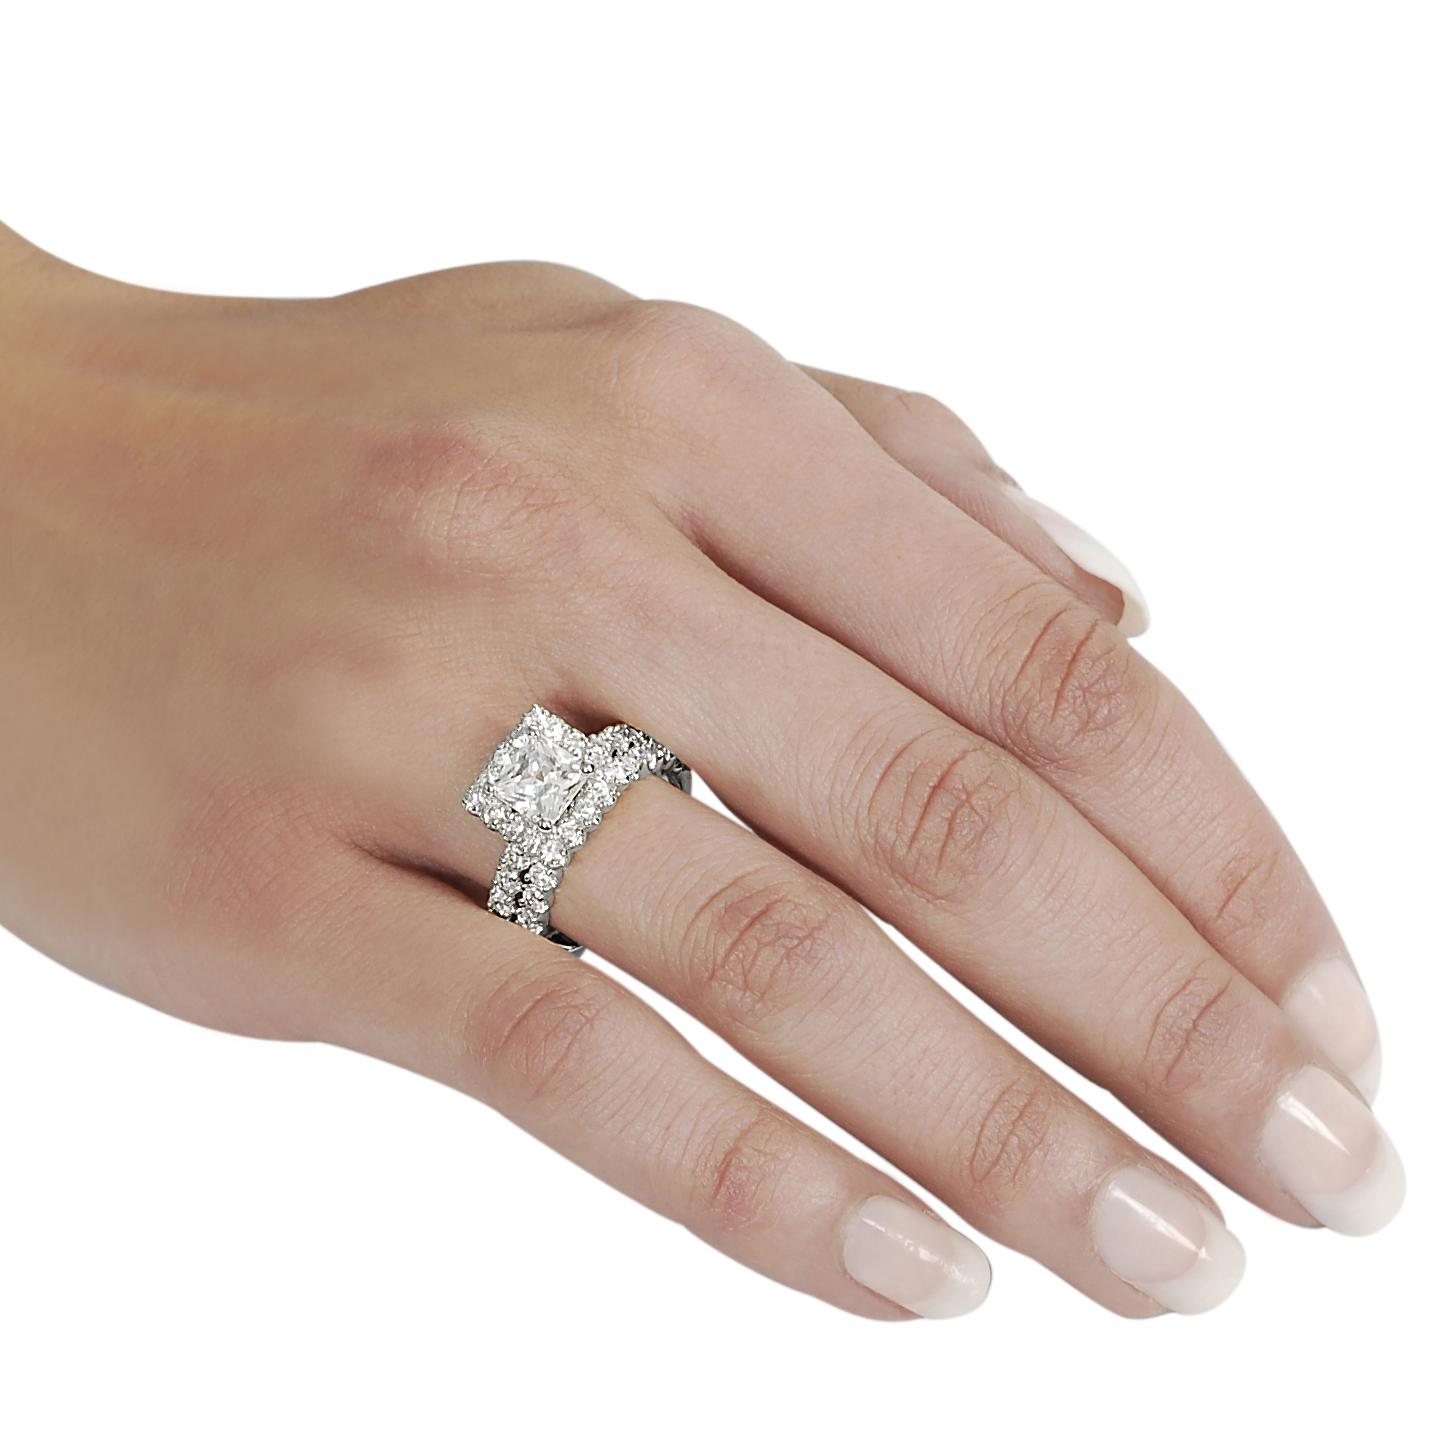 Diamond amp Engagement Rings  Wedding Rings amp Bands  Bevilles